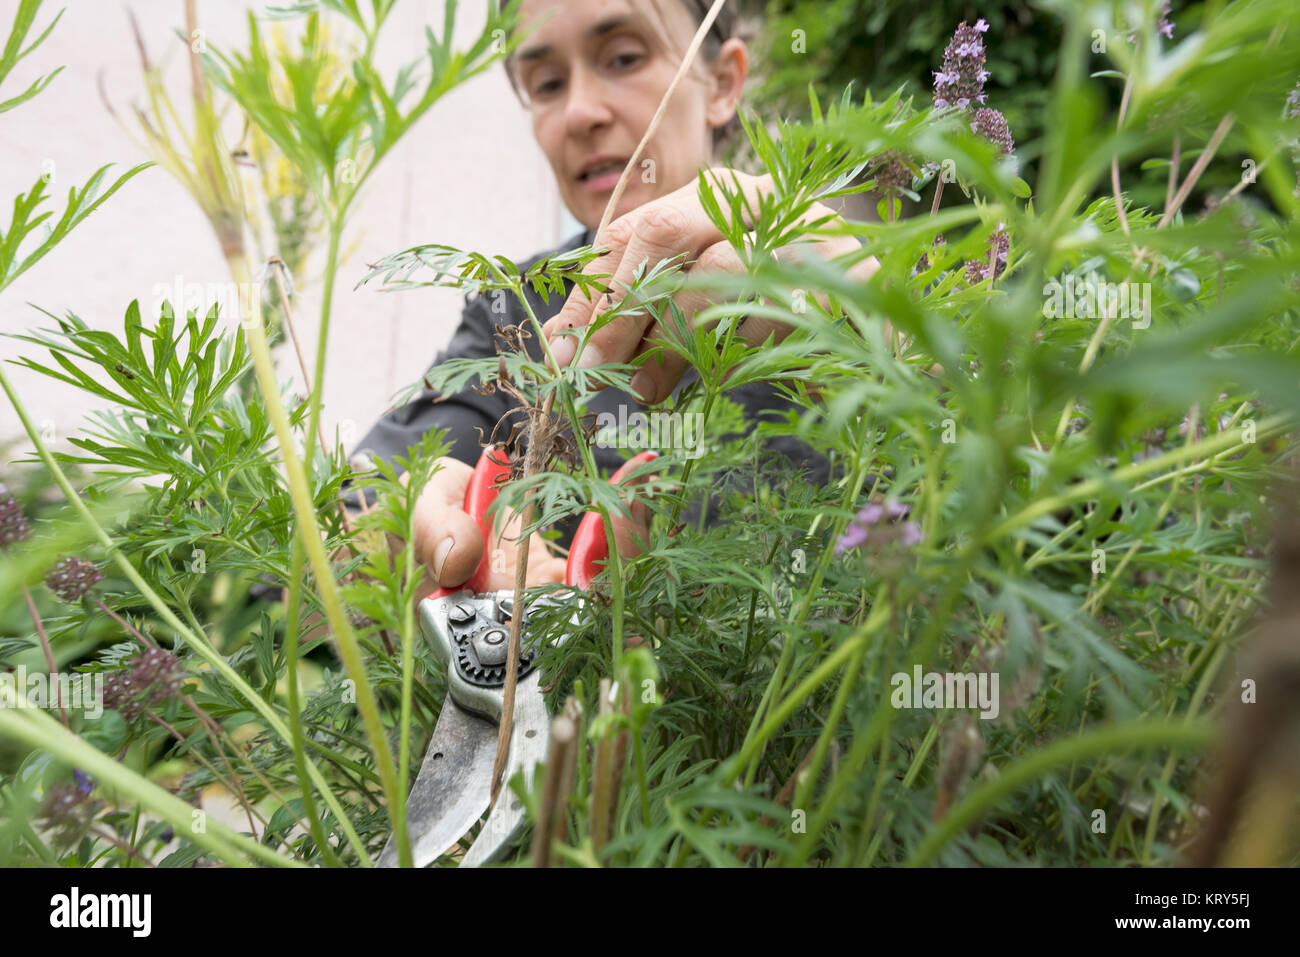 A woman pruning bushes in a garden - Stock Image